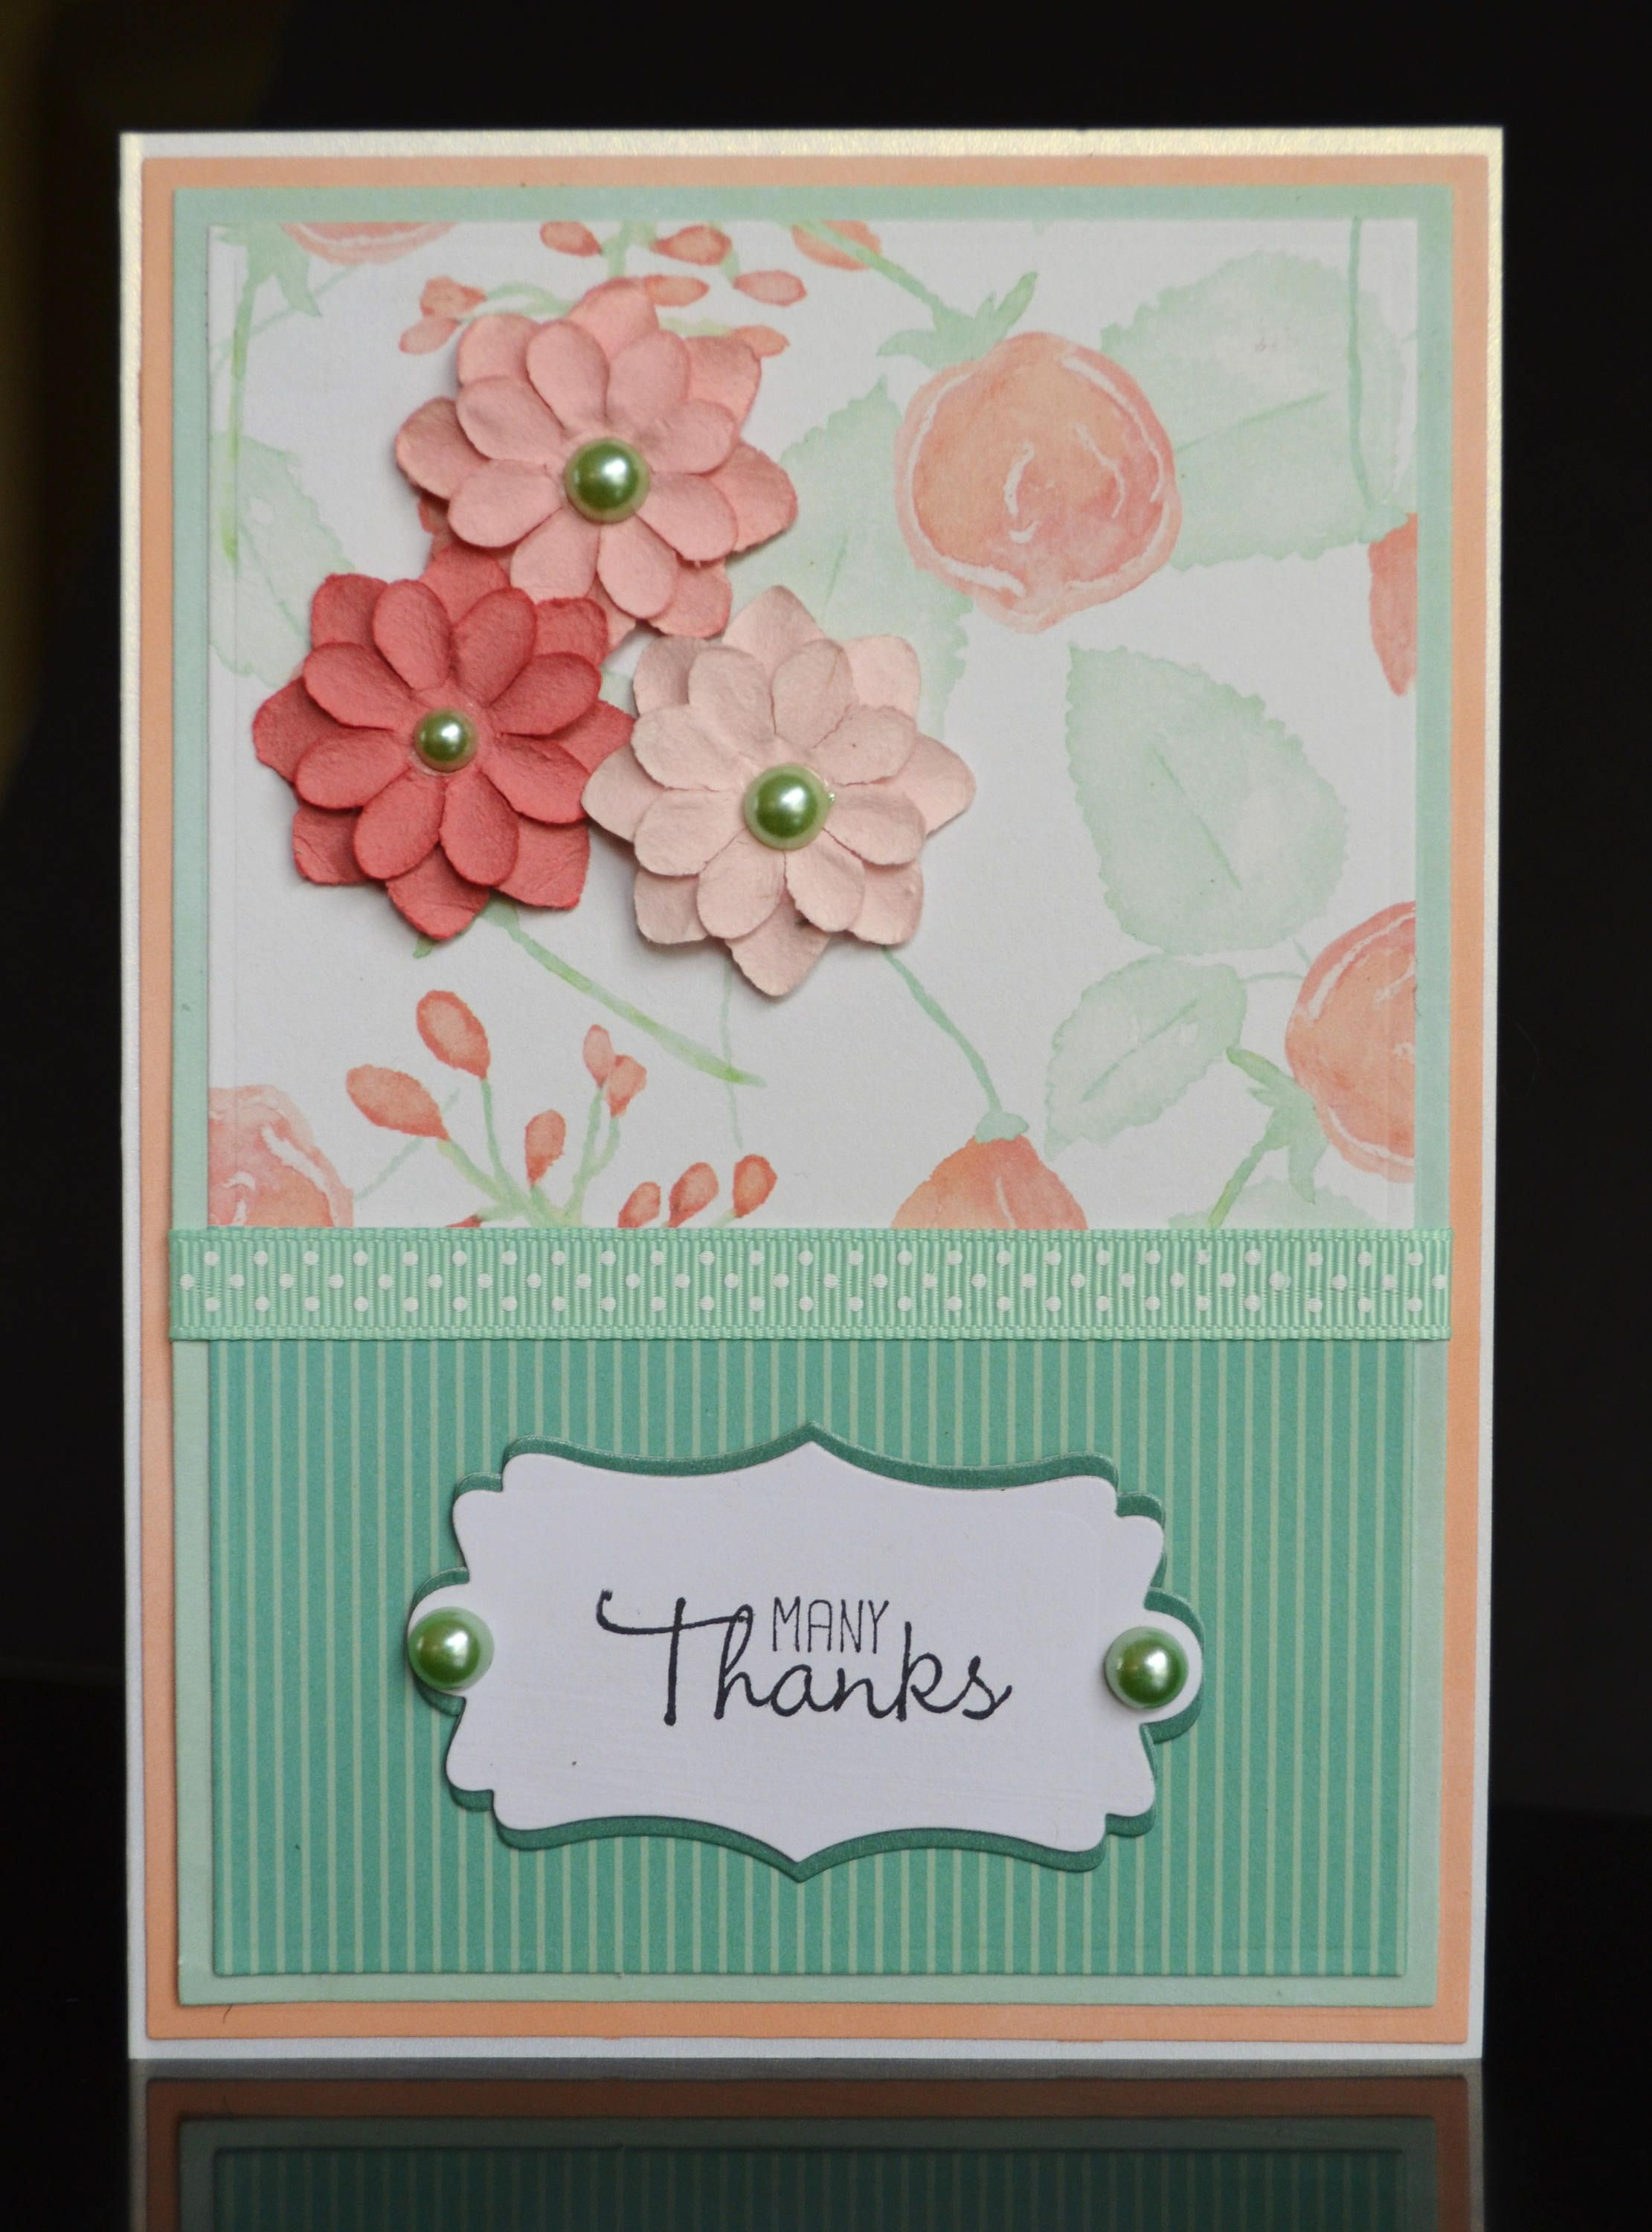 Handmade elegant thank you card with 3d paper flowers and pearls handmade elegant thank you card with 3d paper flowers and pearls many thanks handmade greeting card pink and aqua kristyandbryce Gallery